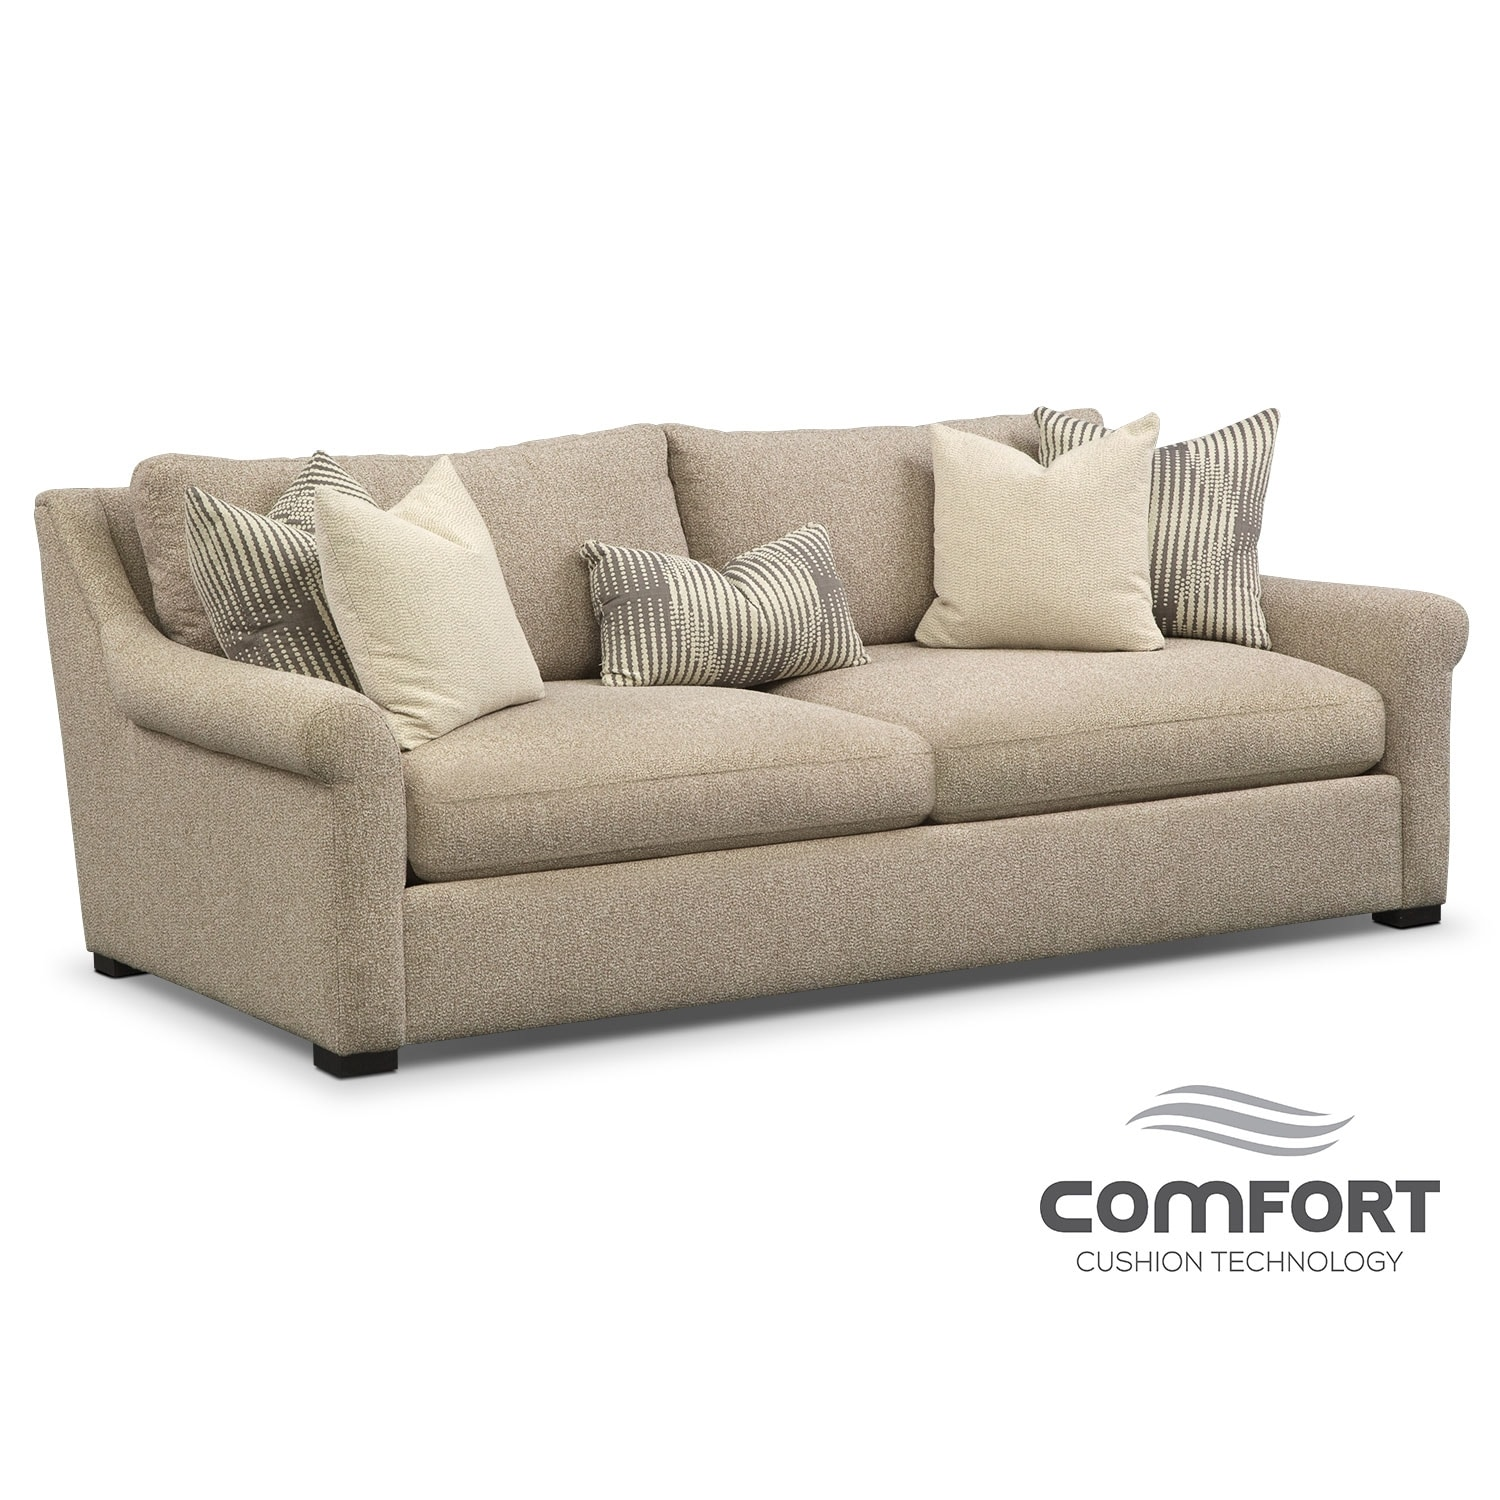 Sofas amp Couches Living Room Seating Value City Furniture : 410594 from www.valuecityfurniture.com size 1500 x 1500 jpeg 336kB